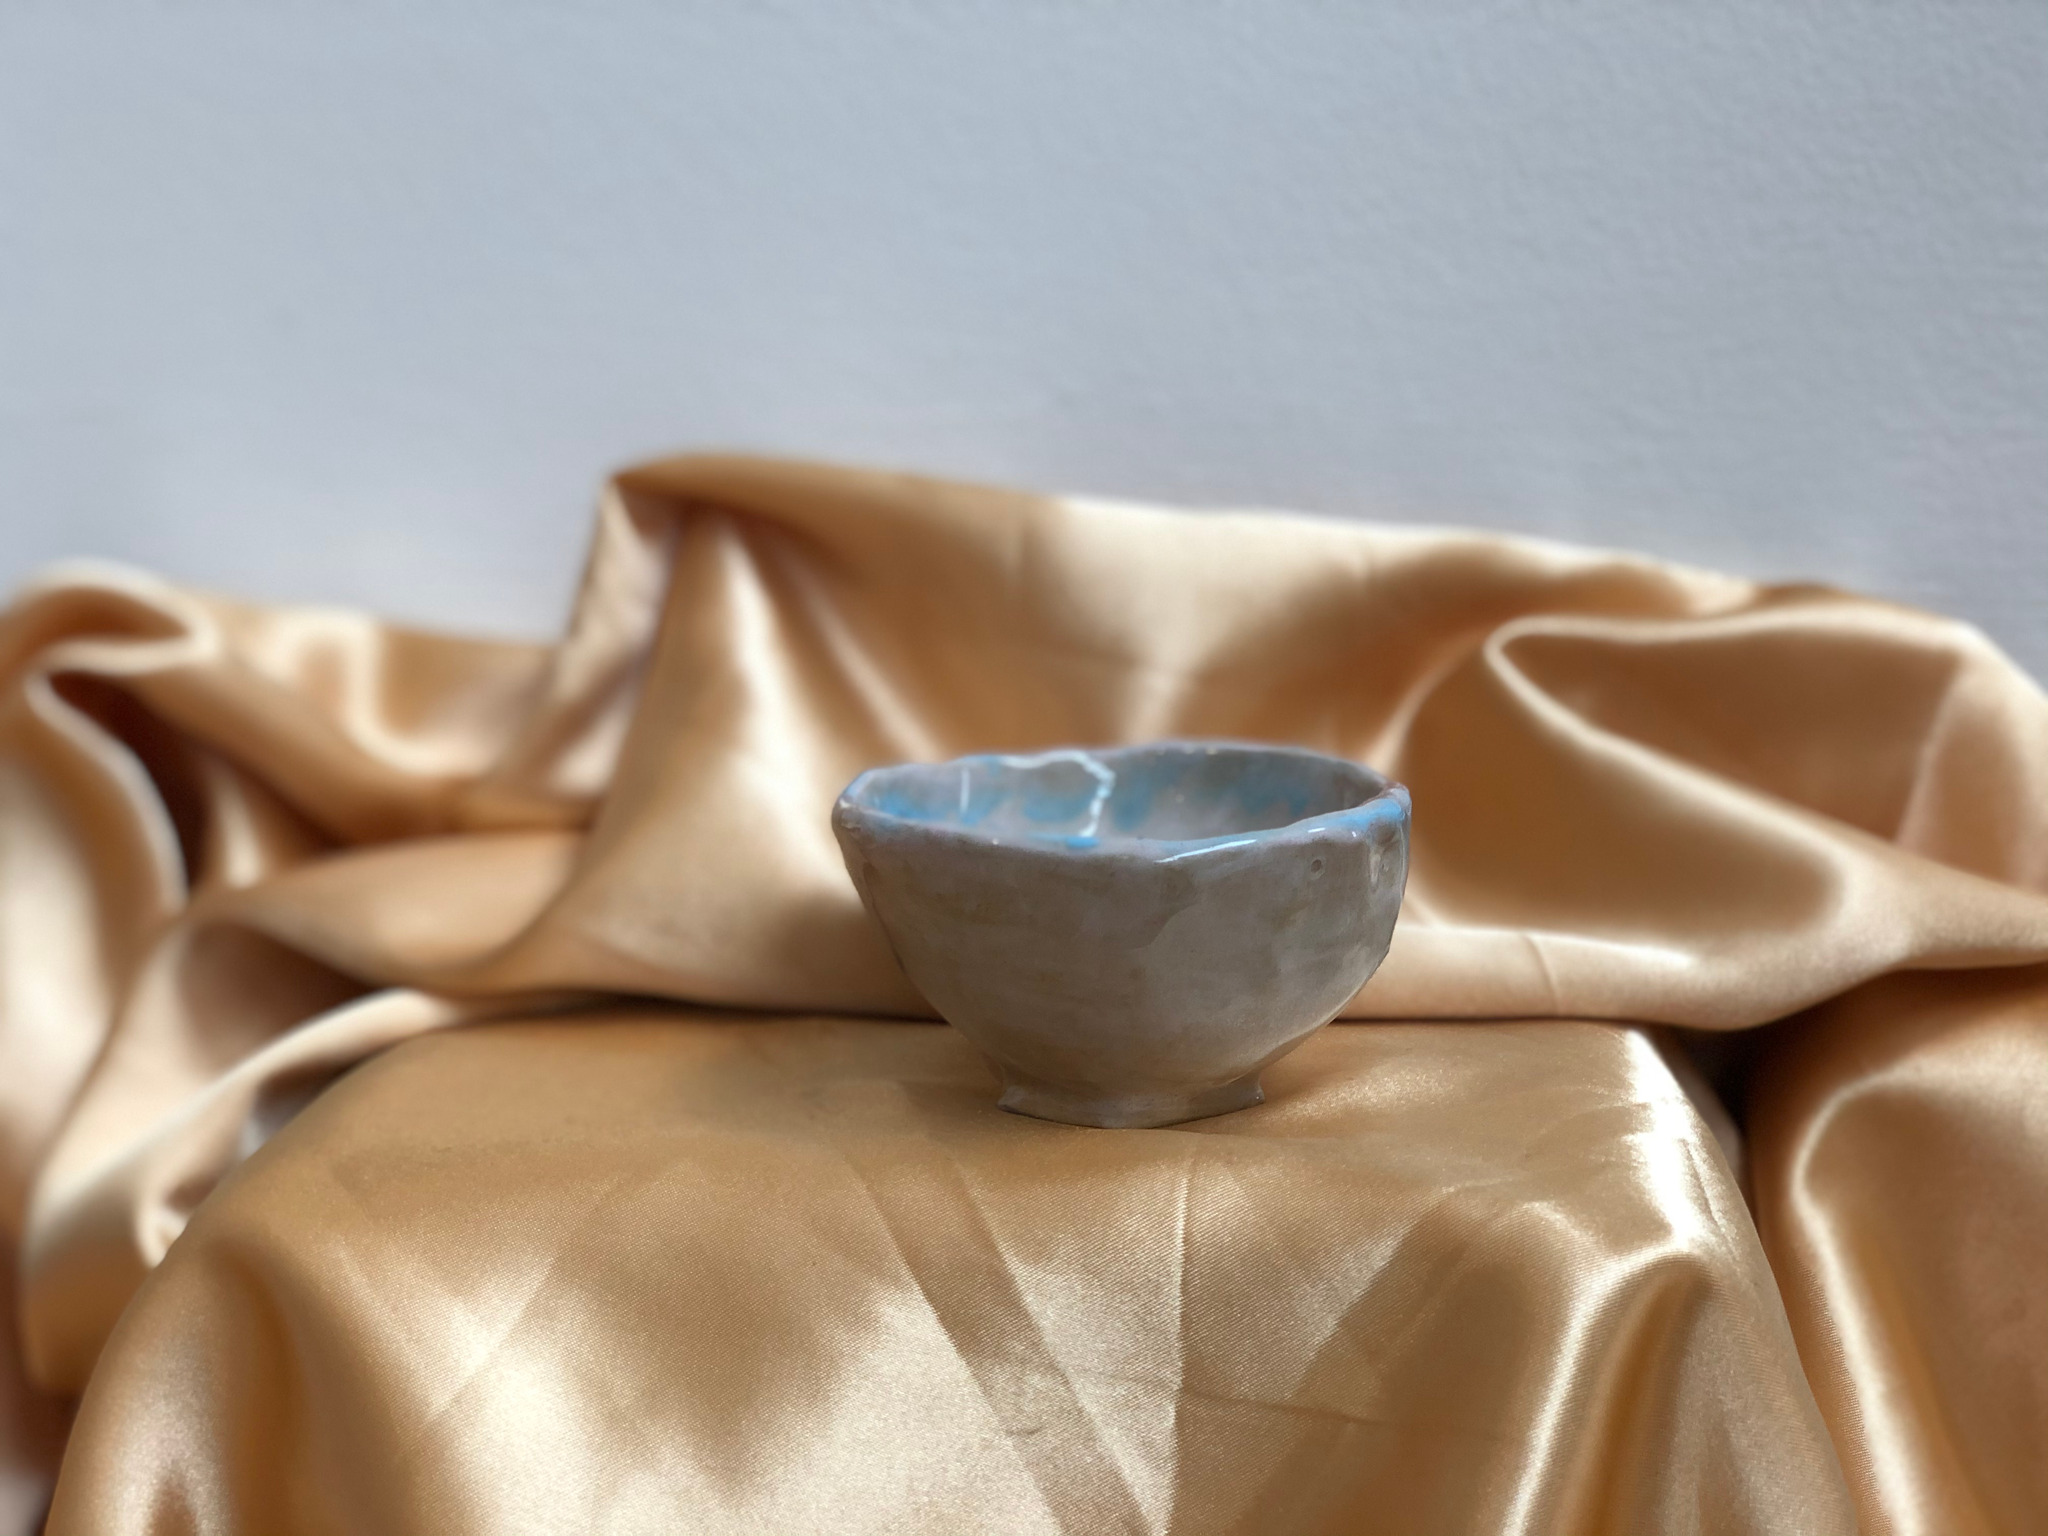 Medium Pink and Blue Bowl by Alex Sutherland